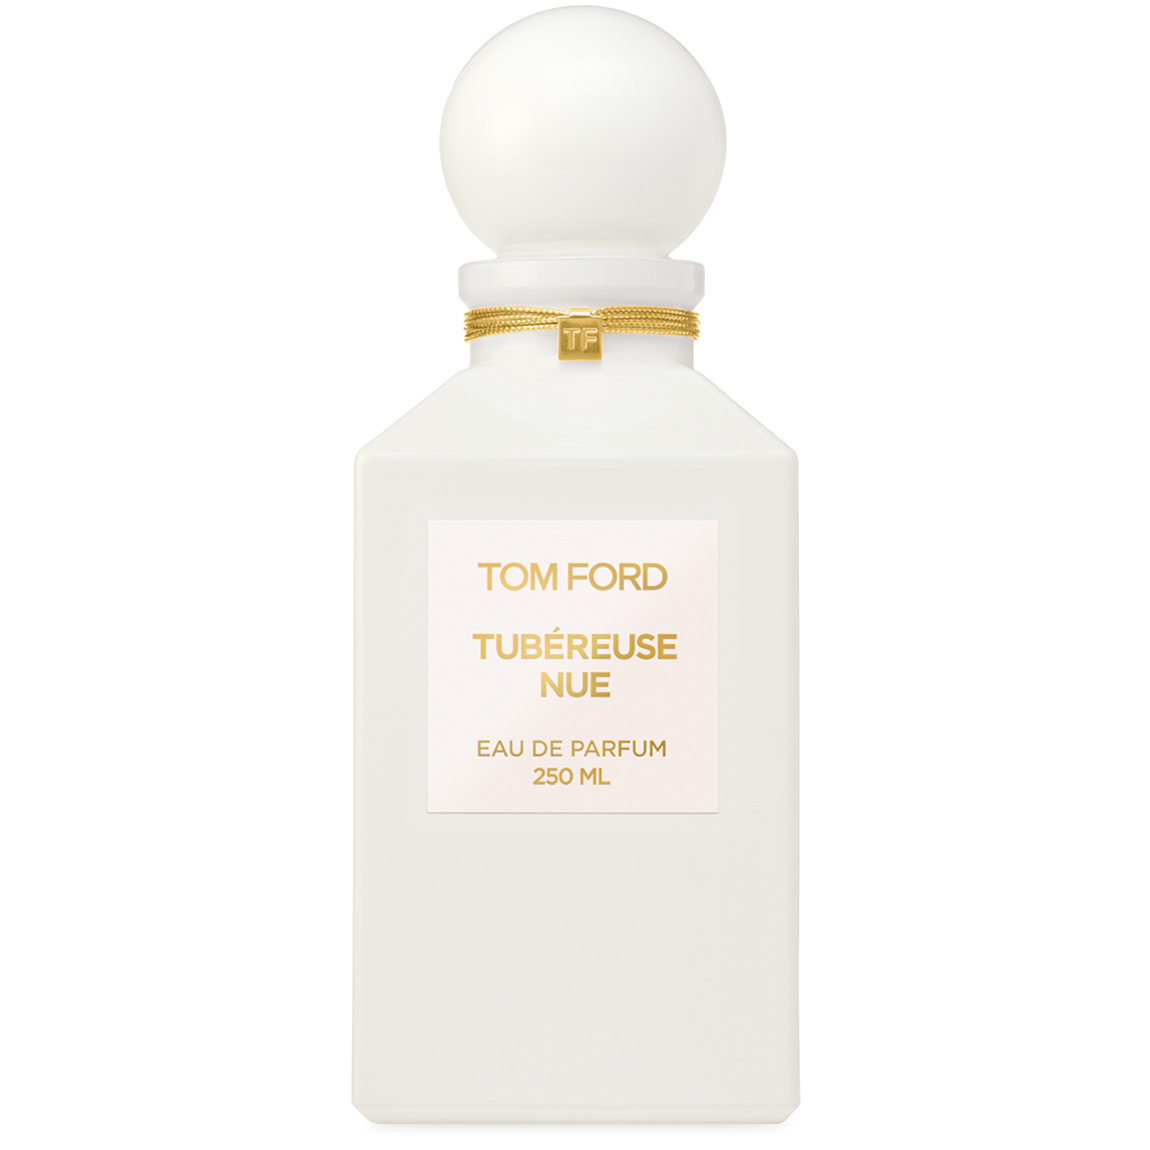 TOM FORD Tubéreuse Nue 250 ml alternative view 1 - product swatch.